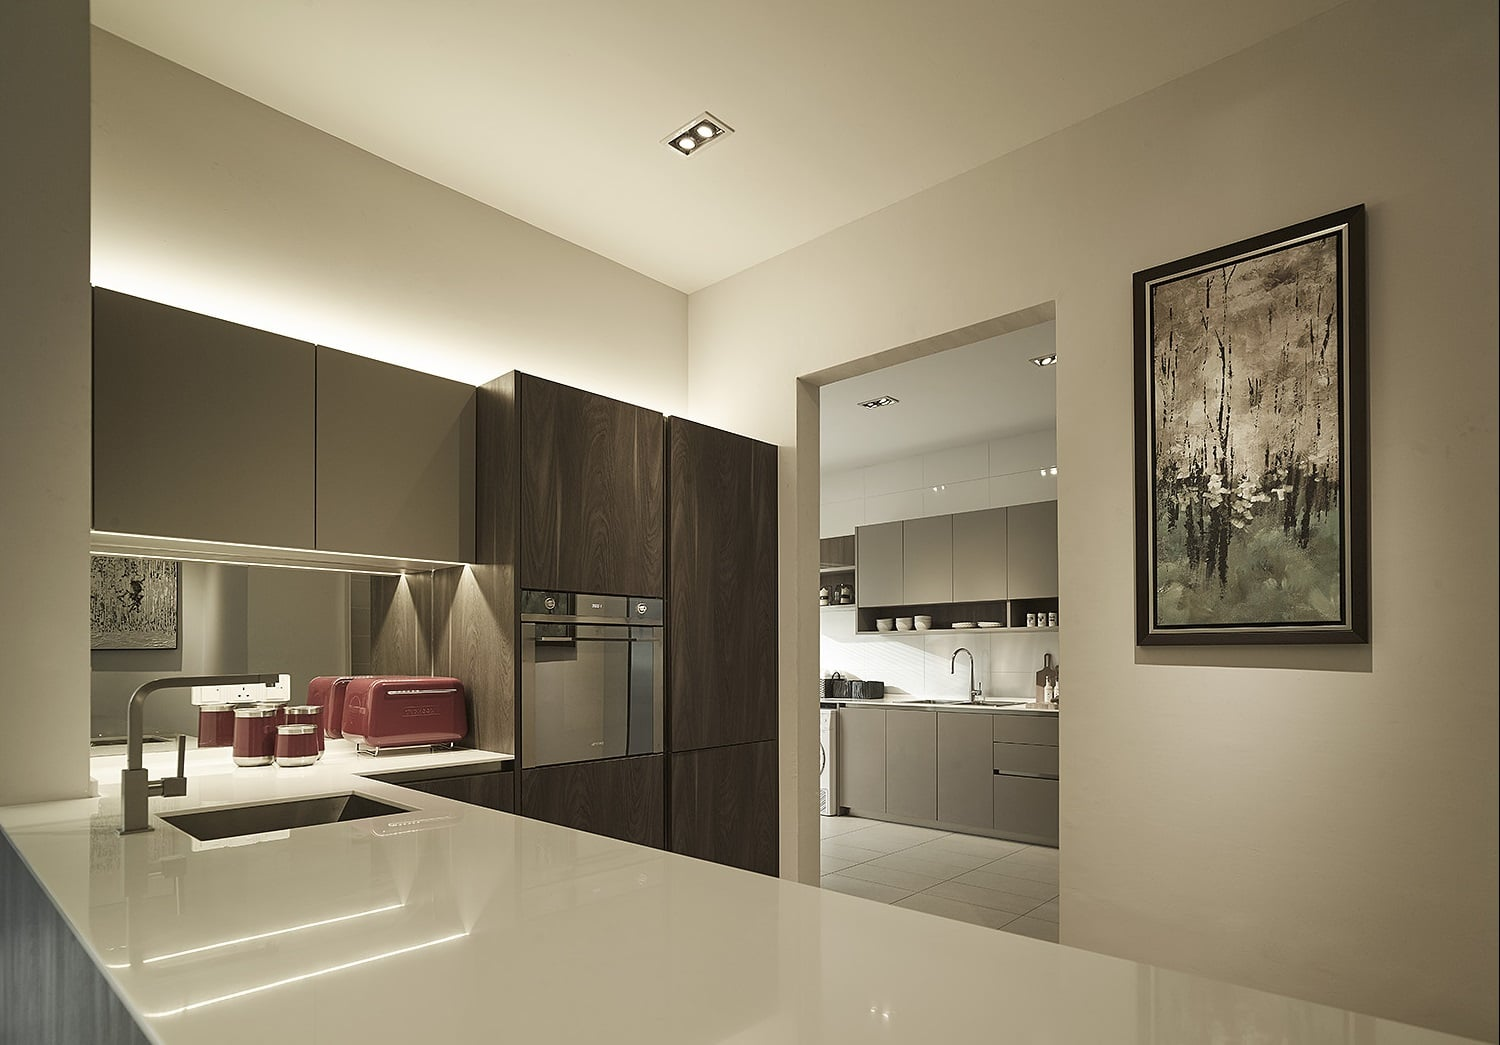 Dry kitchen designed with a more clean modern look.